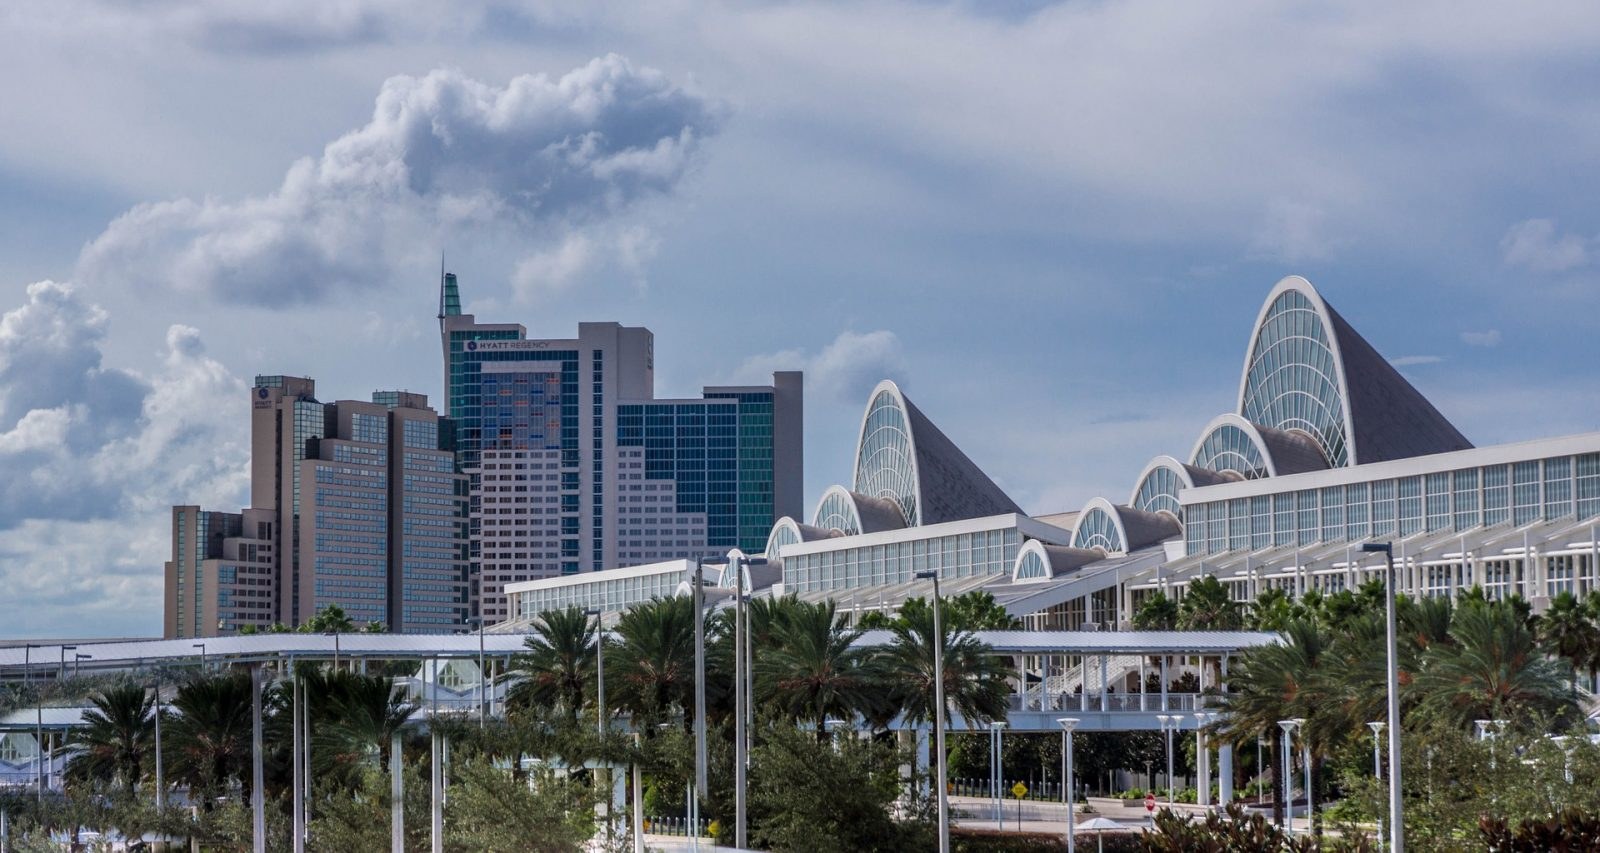 What to do in Orlando: Storm clouds brewing over downtown Orlando?